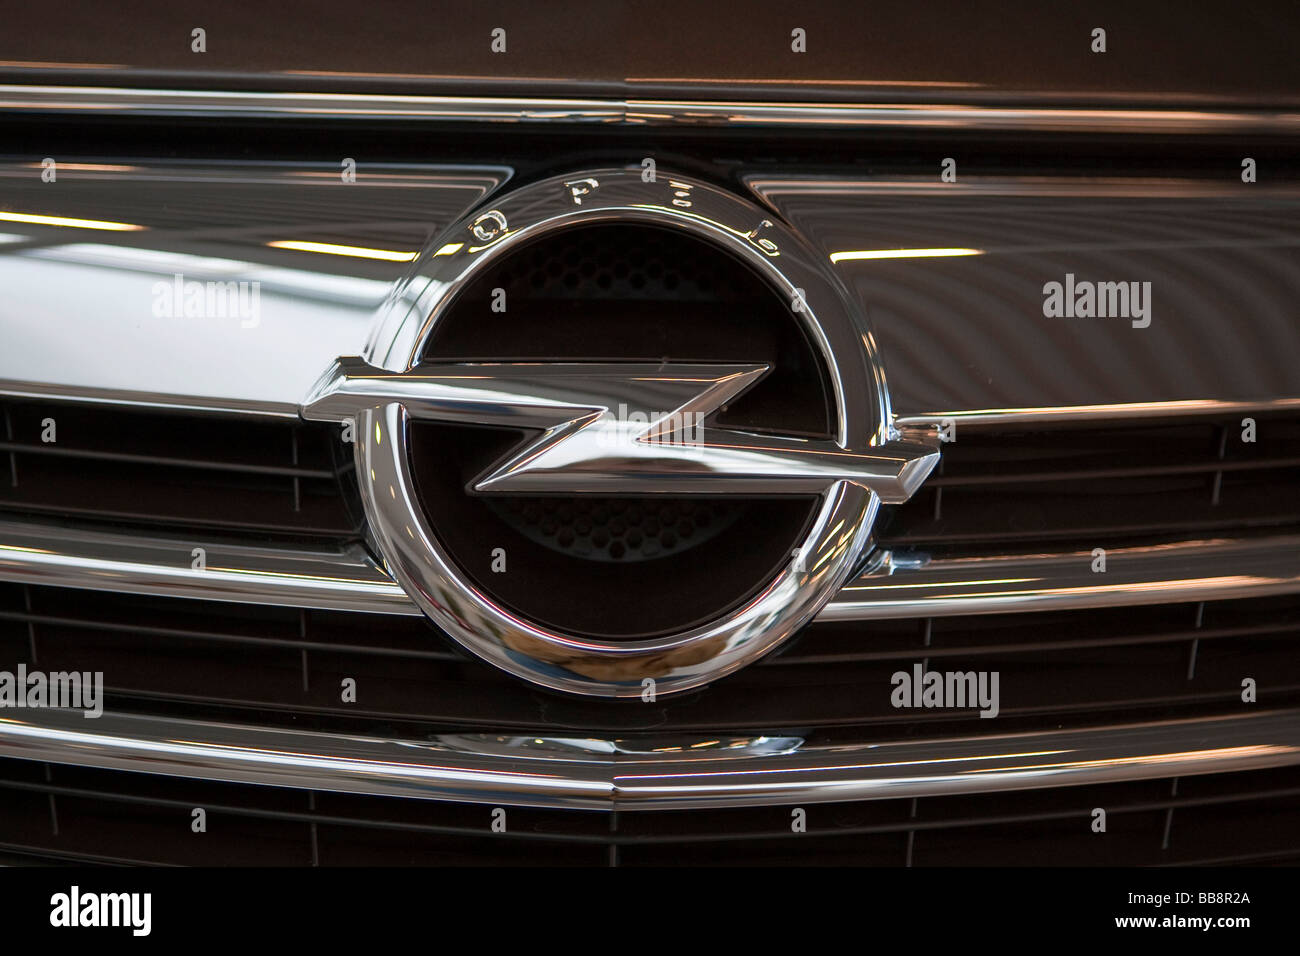 Grille face panel with the company logo of the automobile brand OPEL INSIGNIA, Germany - Stock Image